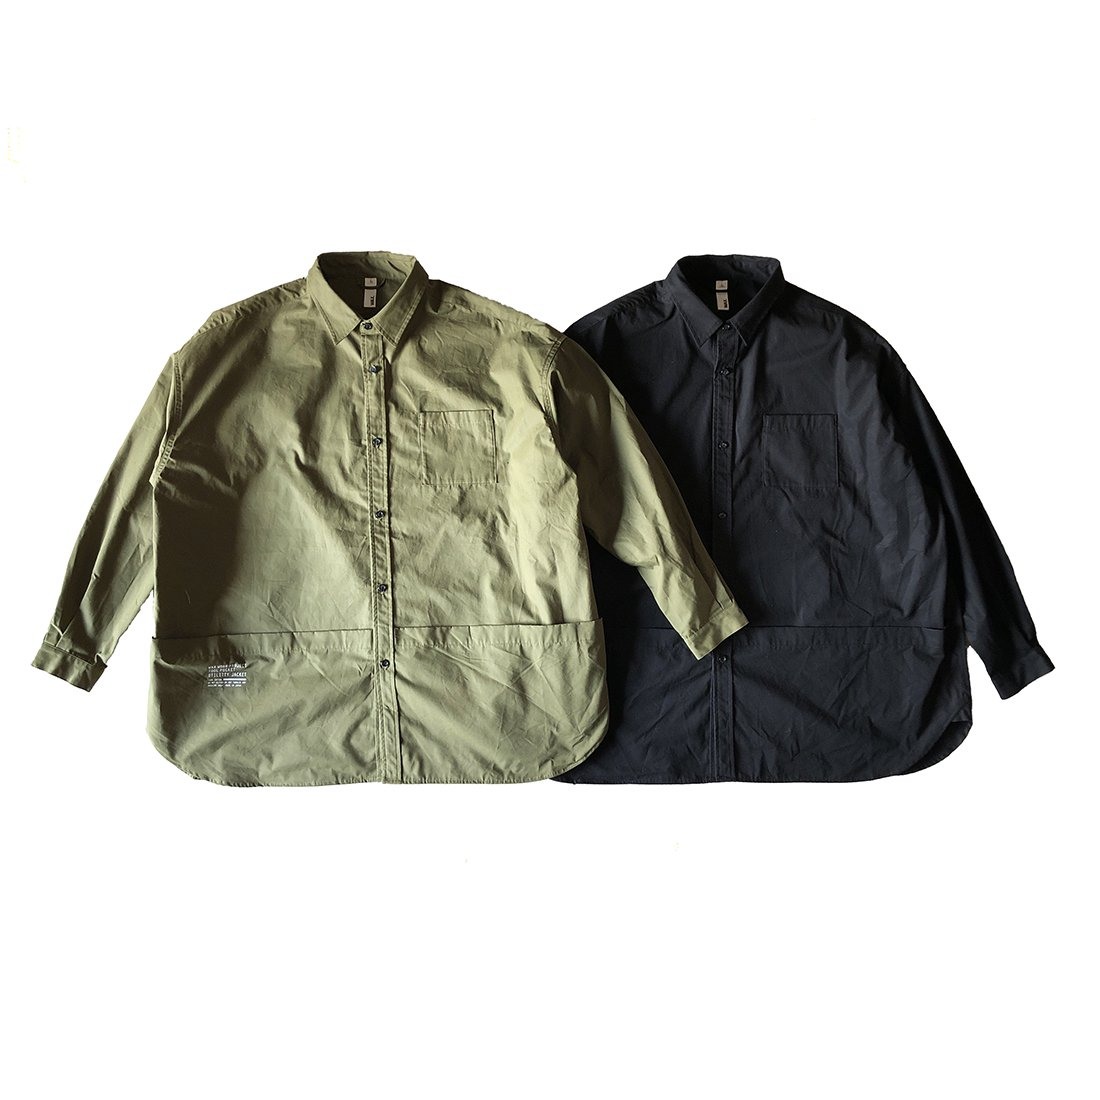 WAX #TOOL POCKET SHIRTS JACKET